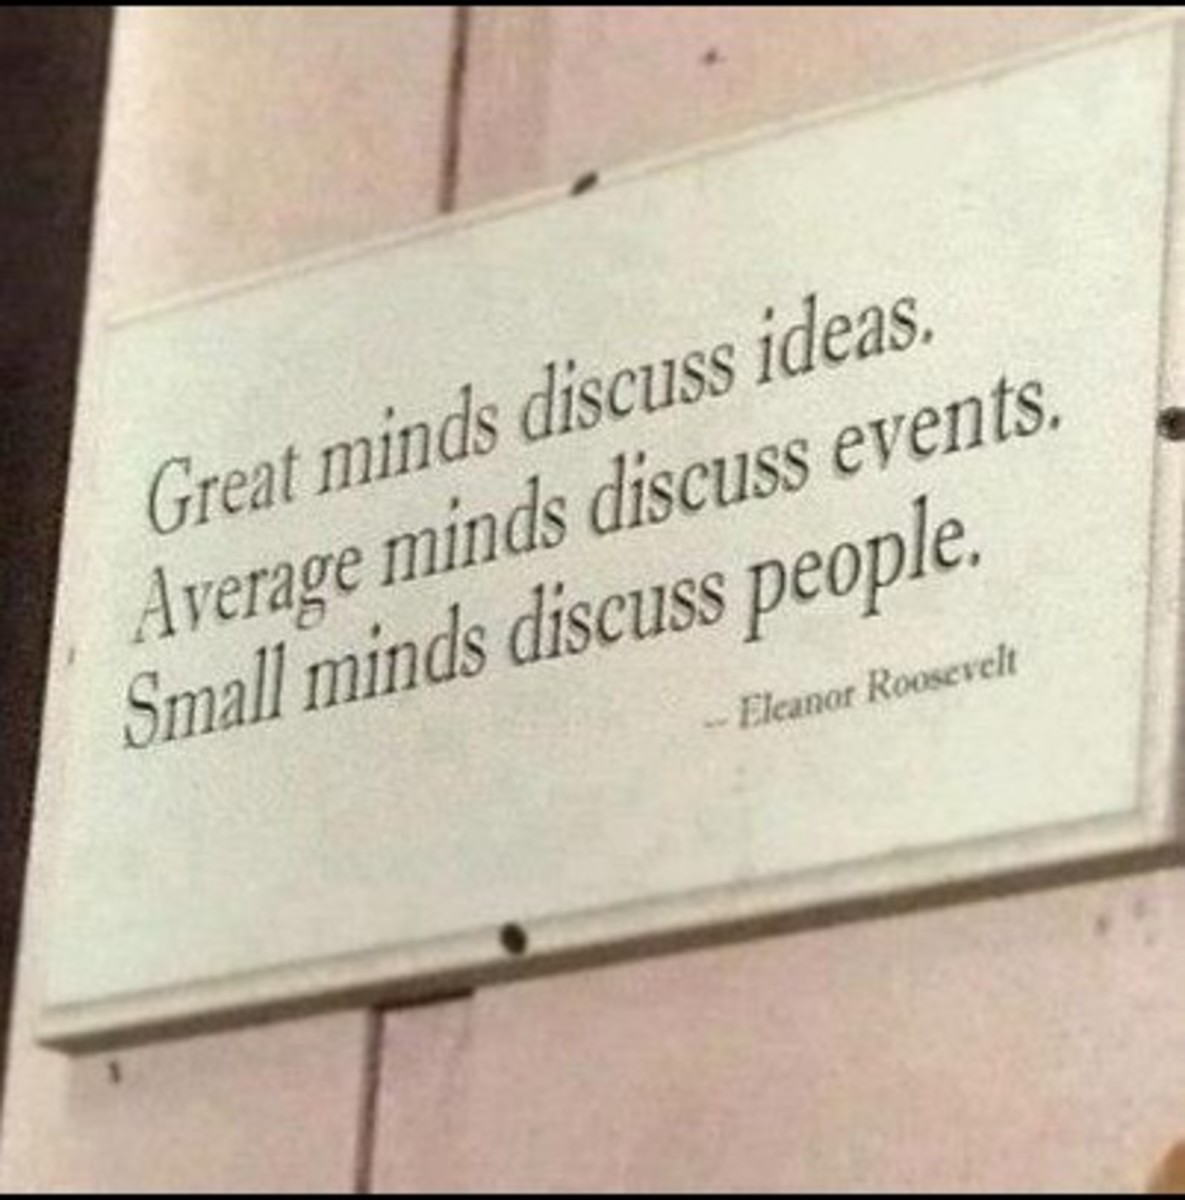 With this photo about minds I am only claming that I have a good mind, because I believe that I have an average mind that has got some ideas that could help mankind in the future; I am writing all this because I believe that my idea is worth to try.